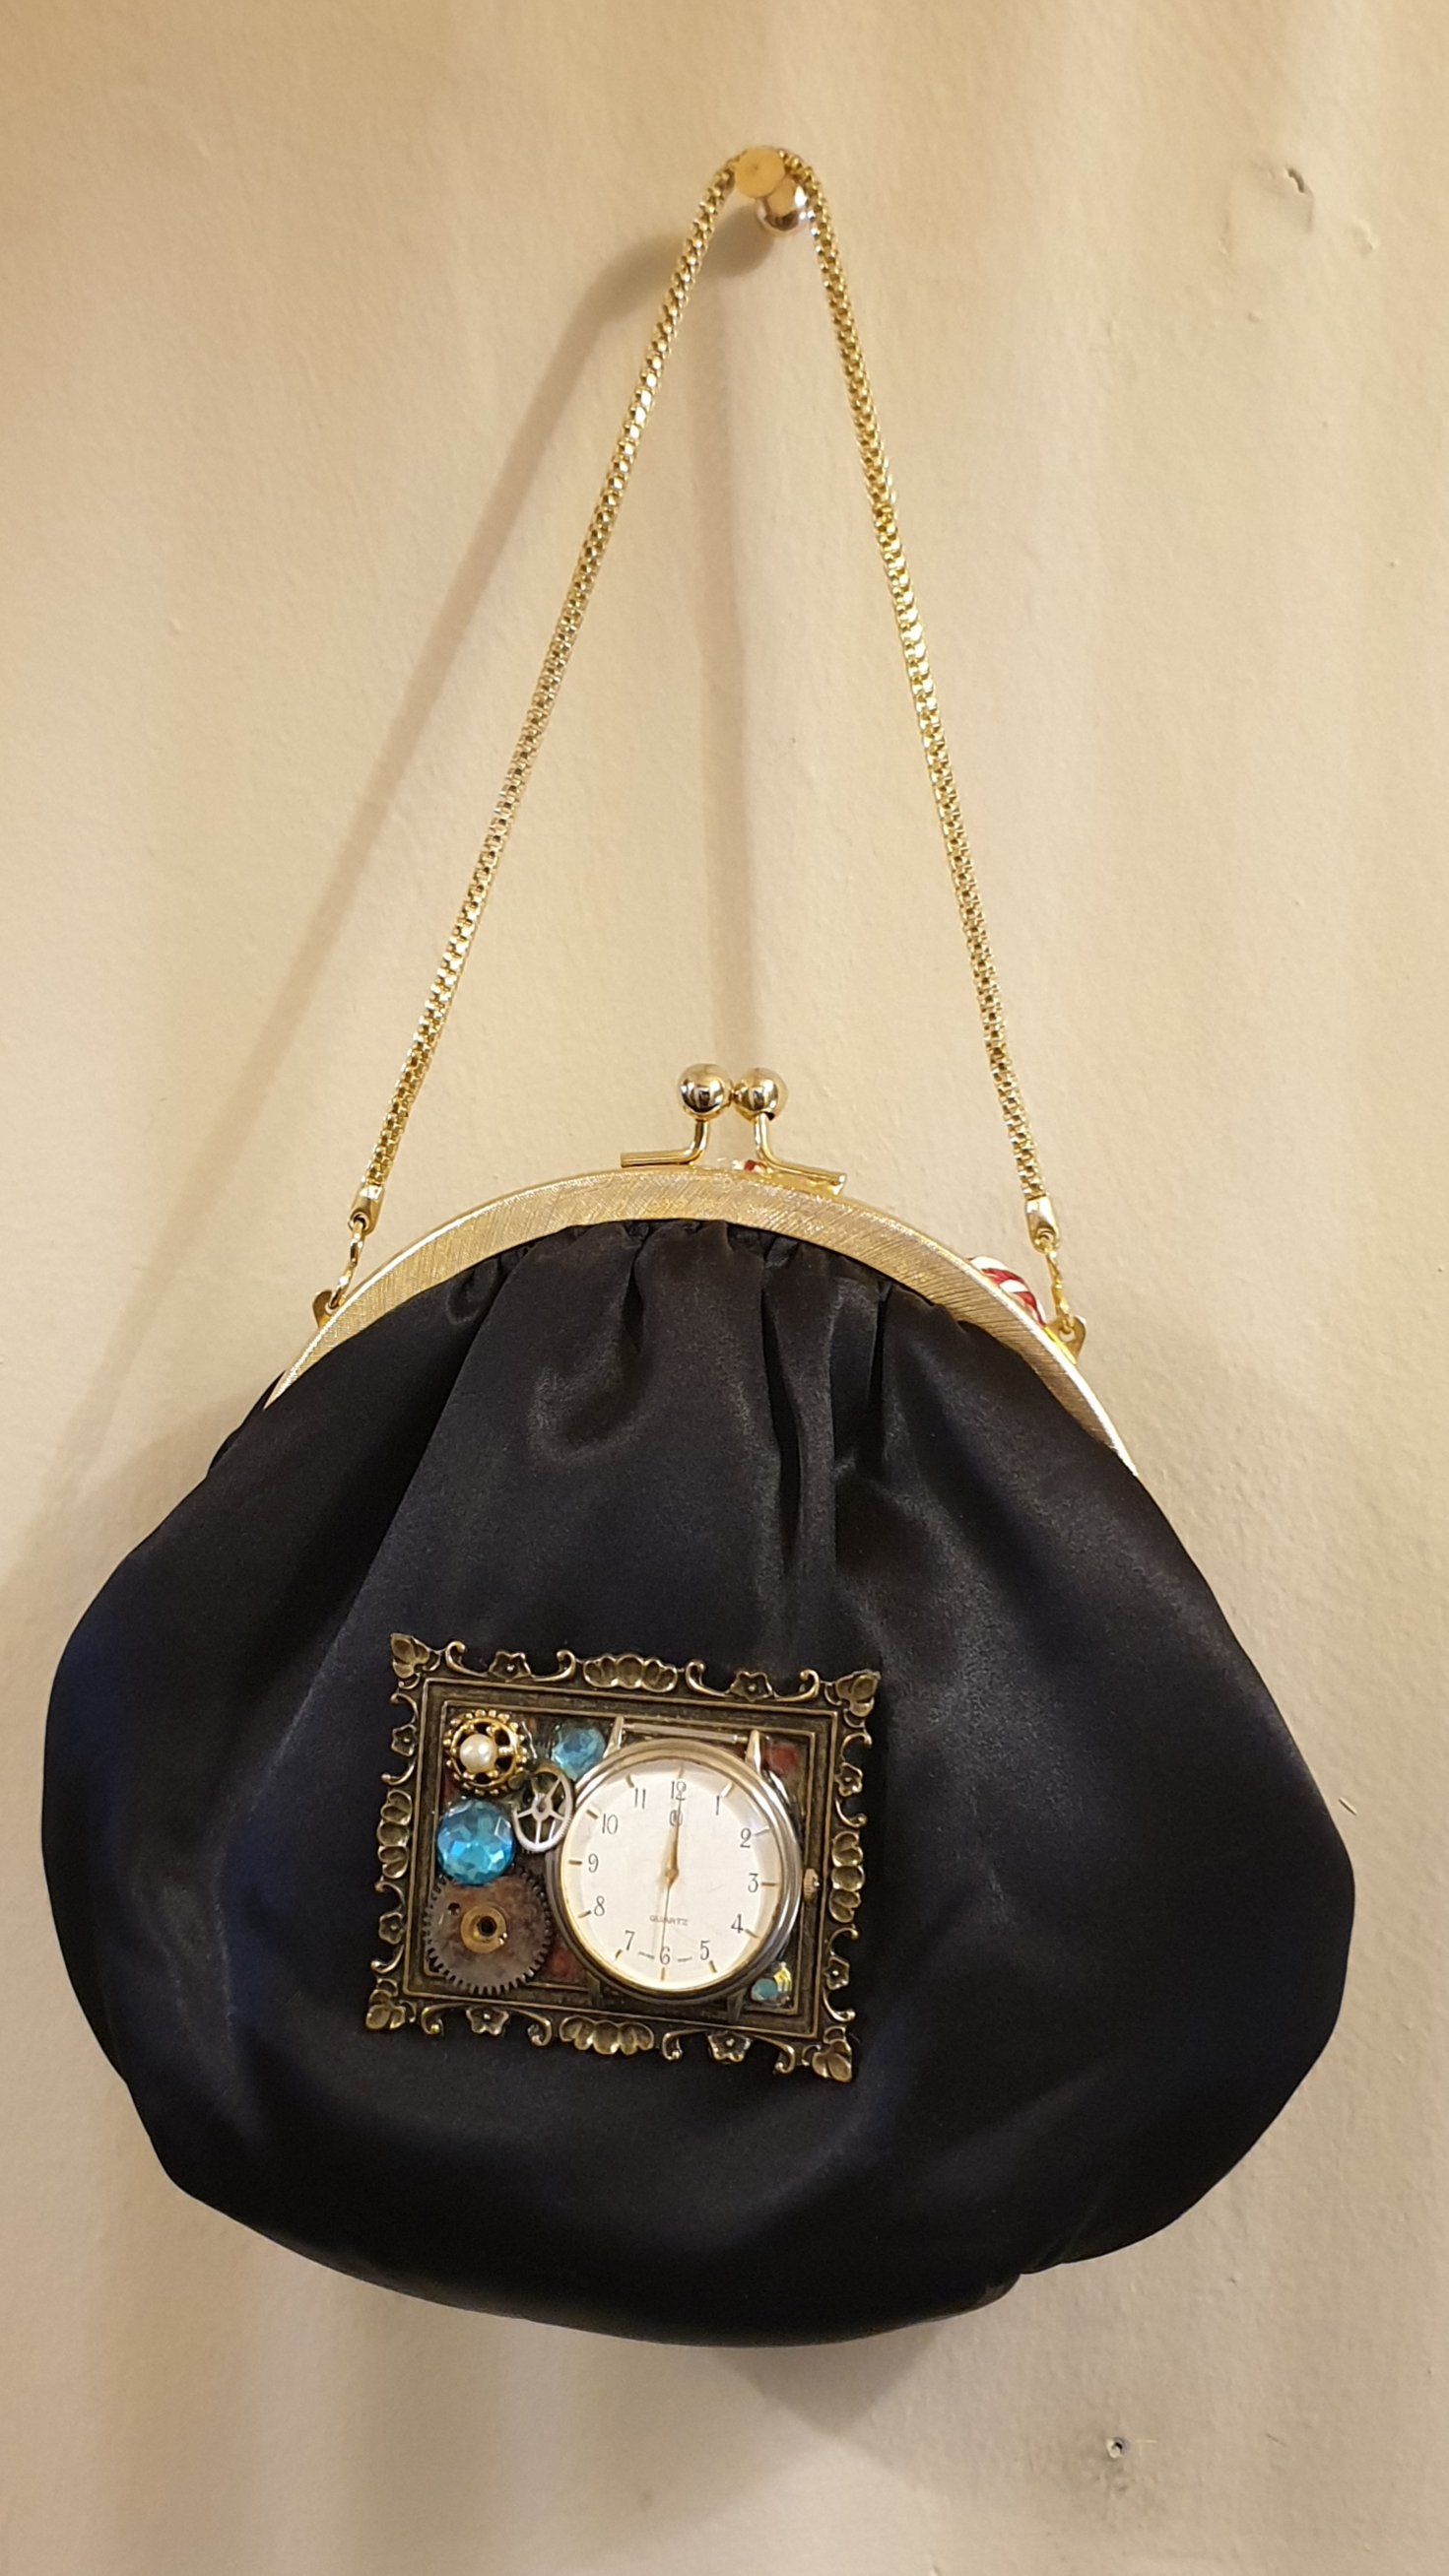 Black satin wrist bag